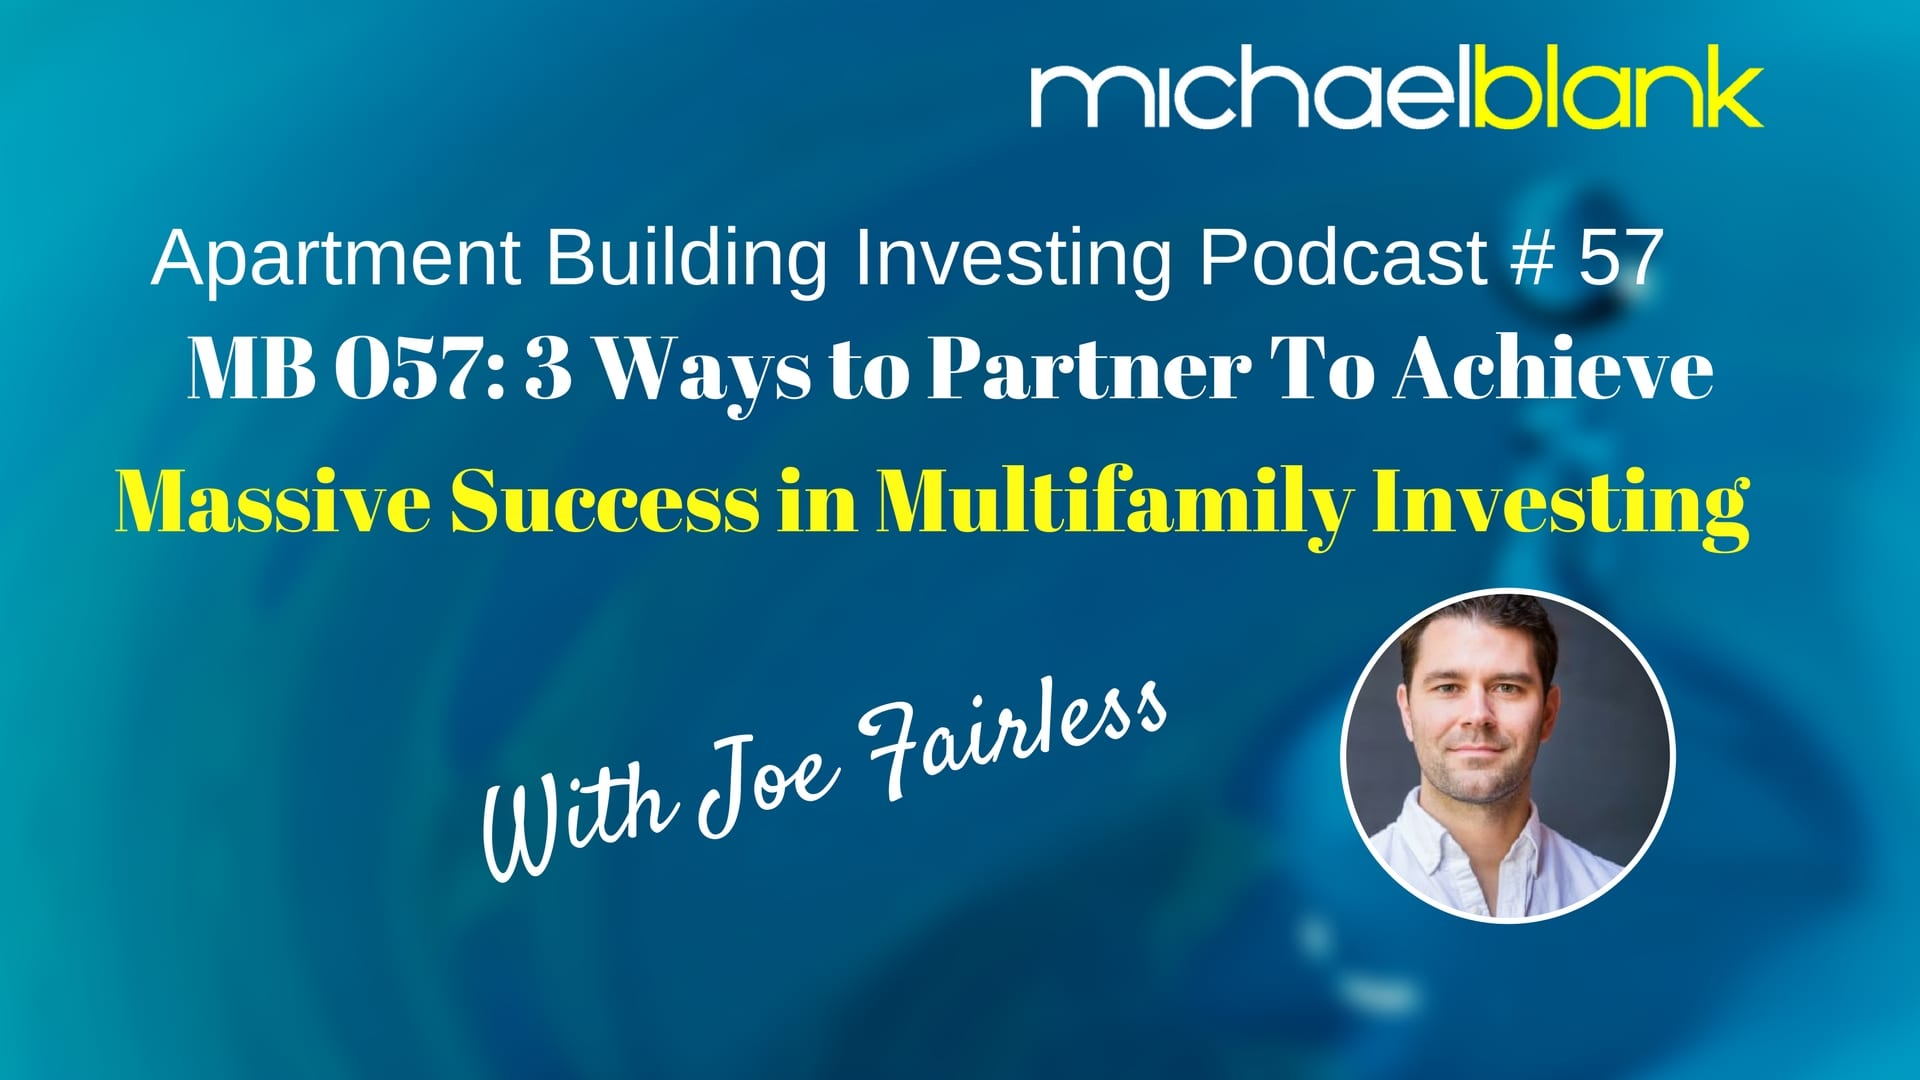 MB 057: 3 Ways to Partner To Achieve Massive Success in Multifamily Investing – With Joe Fairless